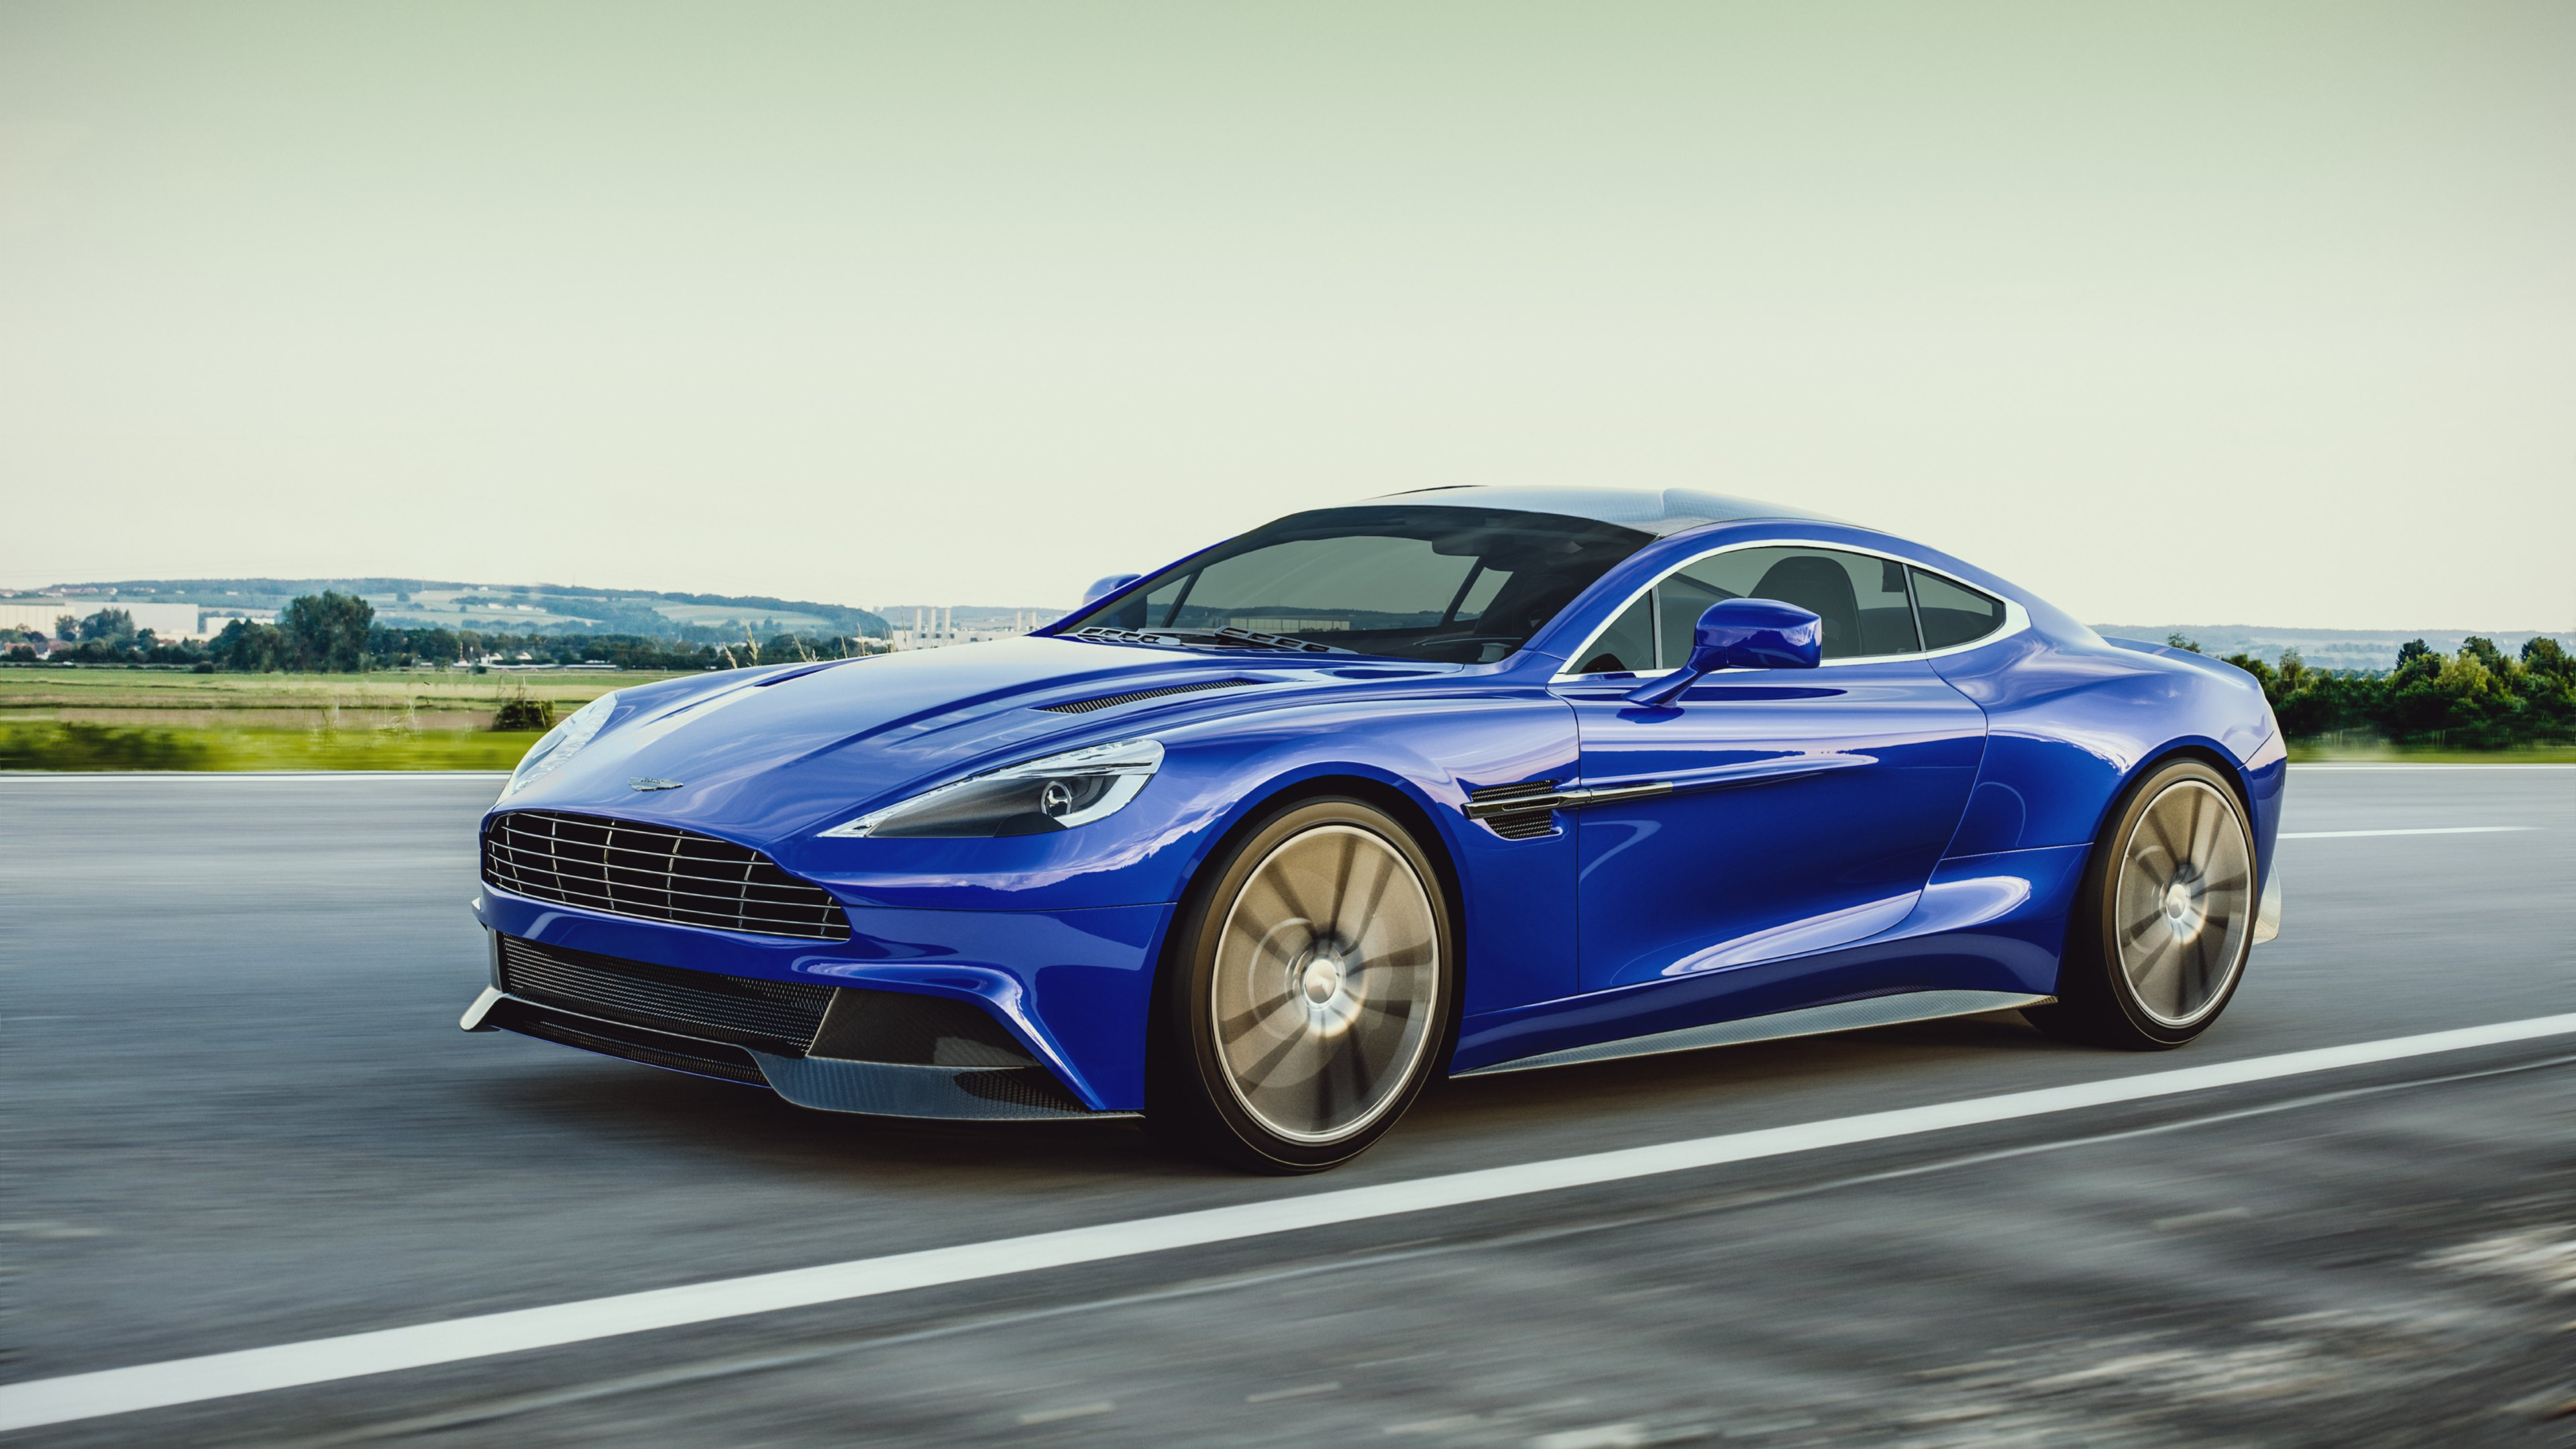 aston martin vanquish 4k ultra hd wallpaper | background image